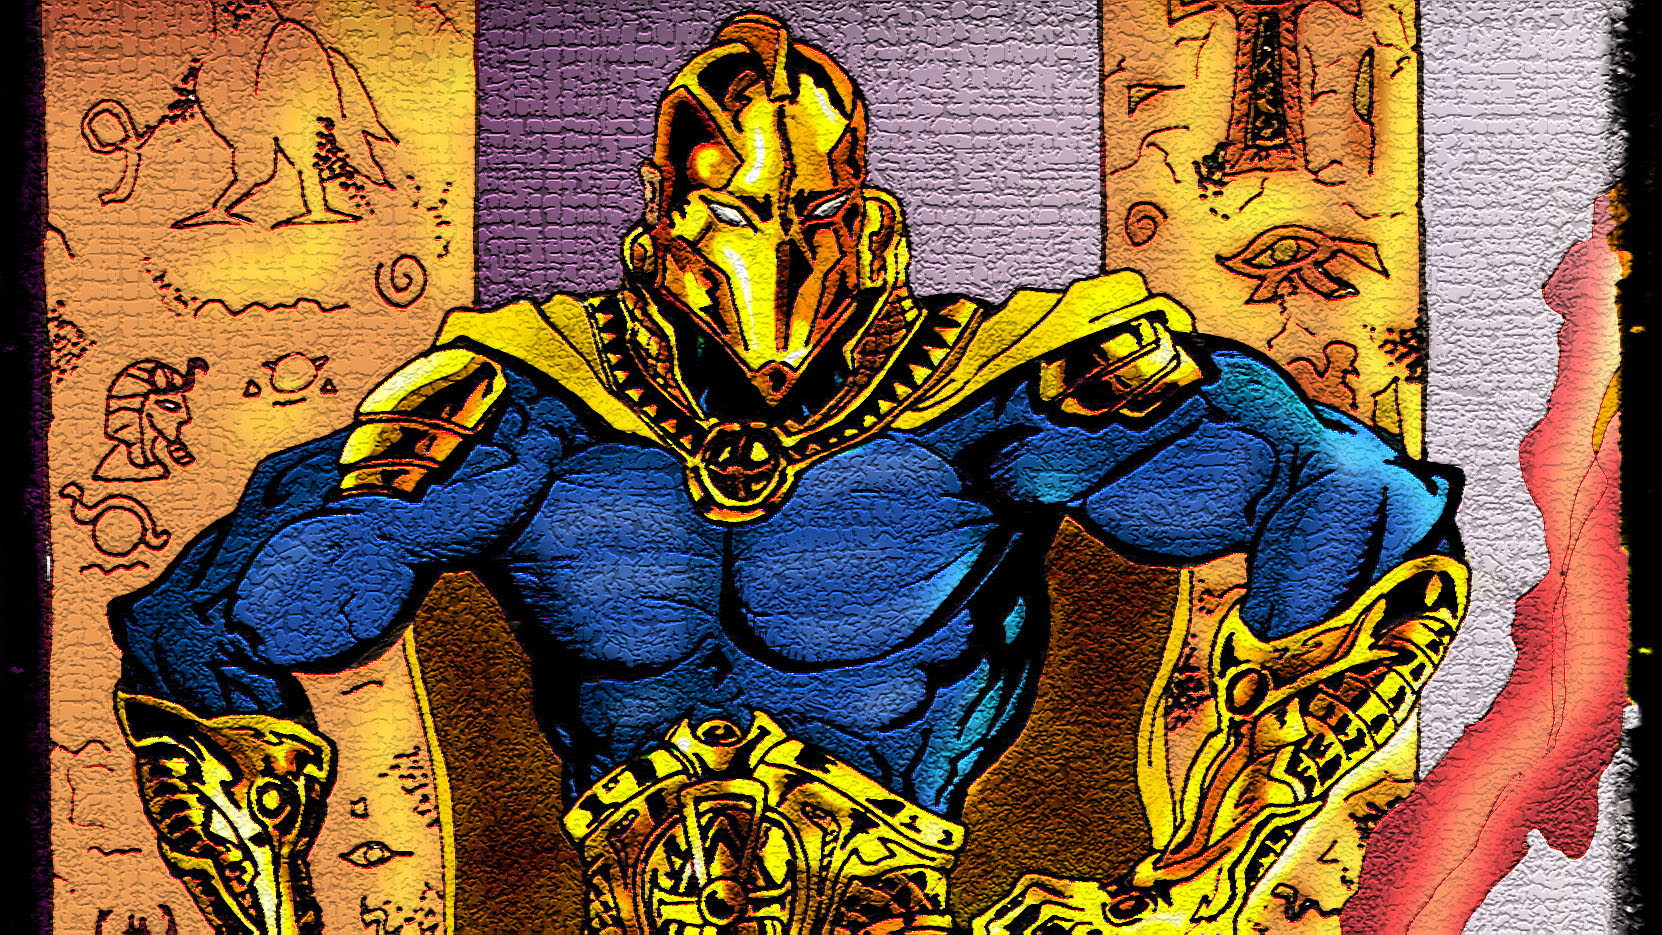 Dr Fate Wallpaper and Background 1662x935 ID467889 1662x935